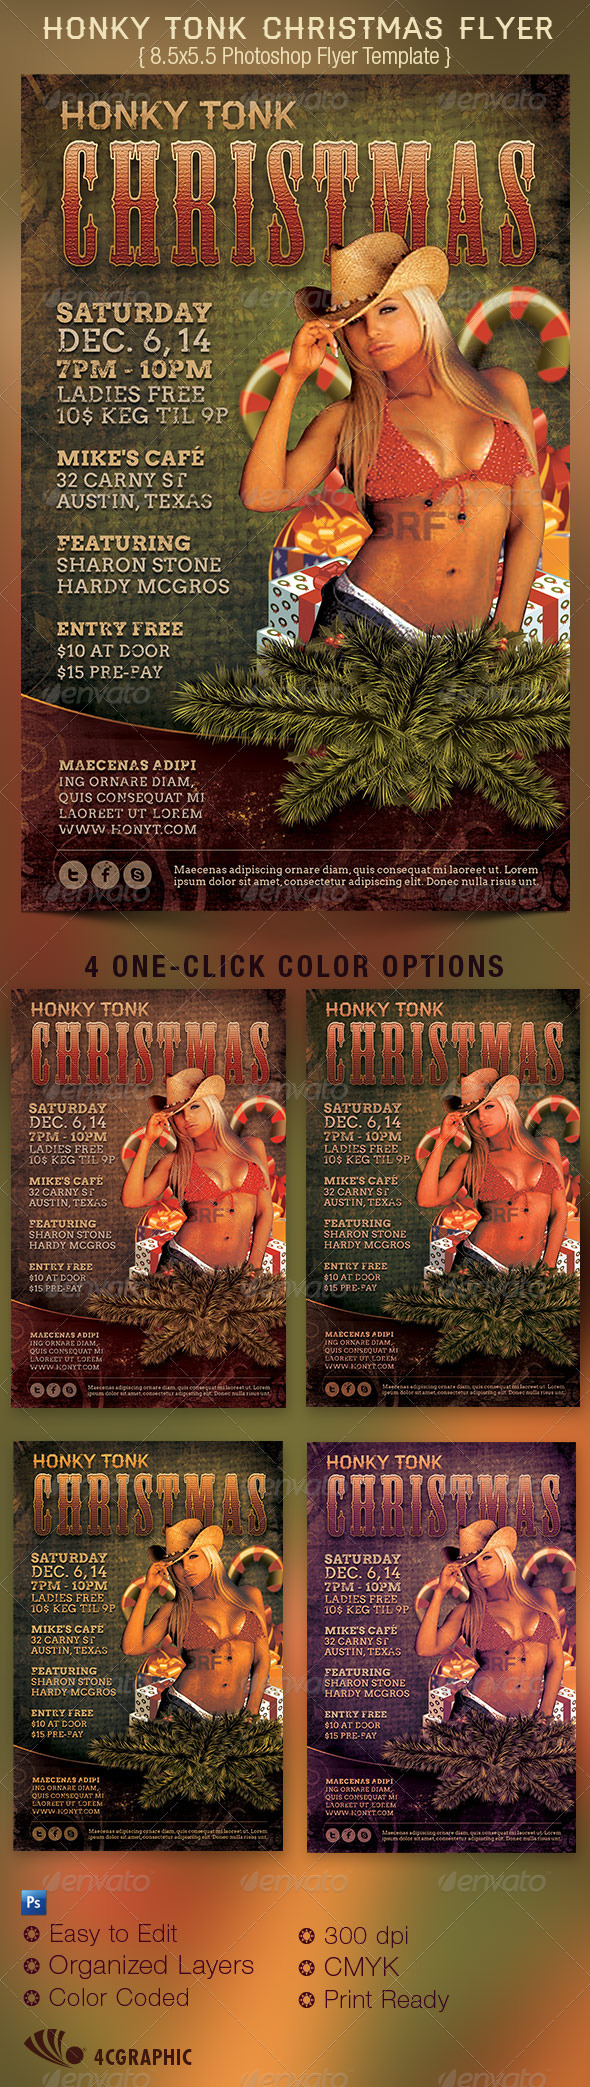 Honky Tonk Country Christmas Flyer Template - Clubs & Parties Events